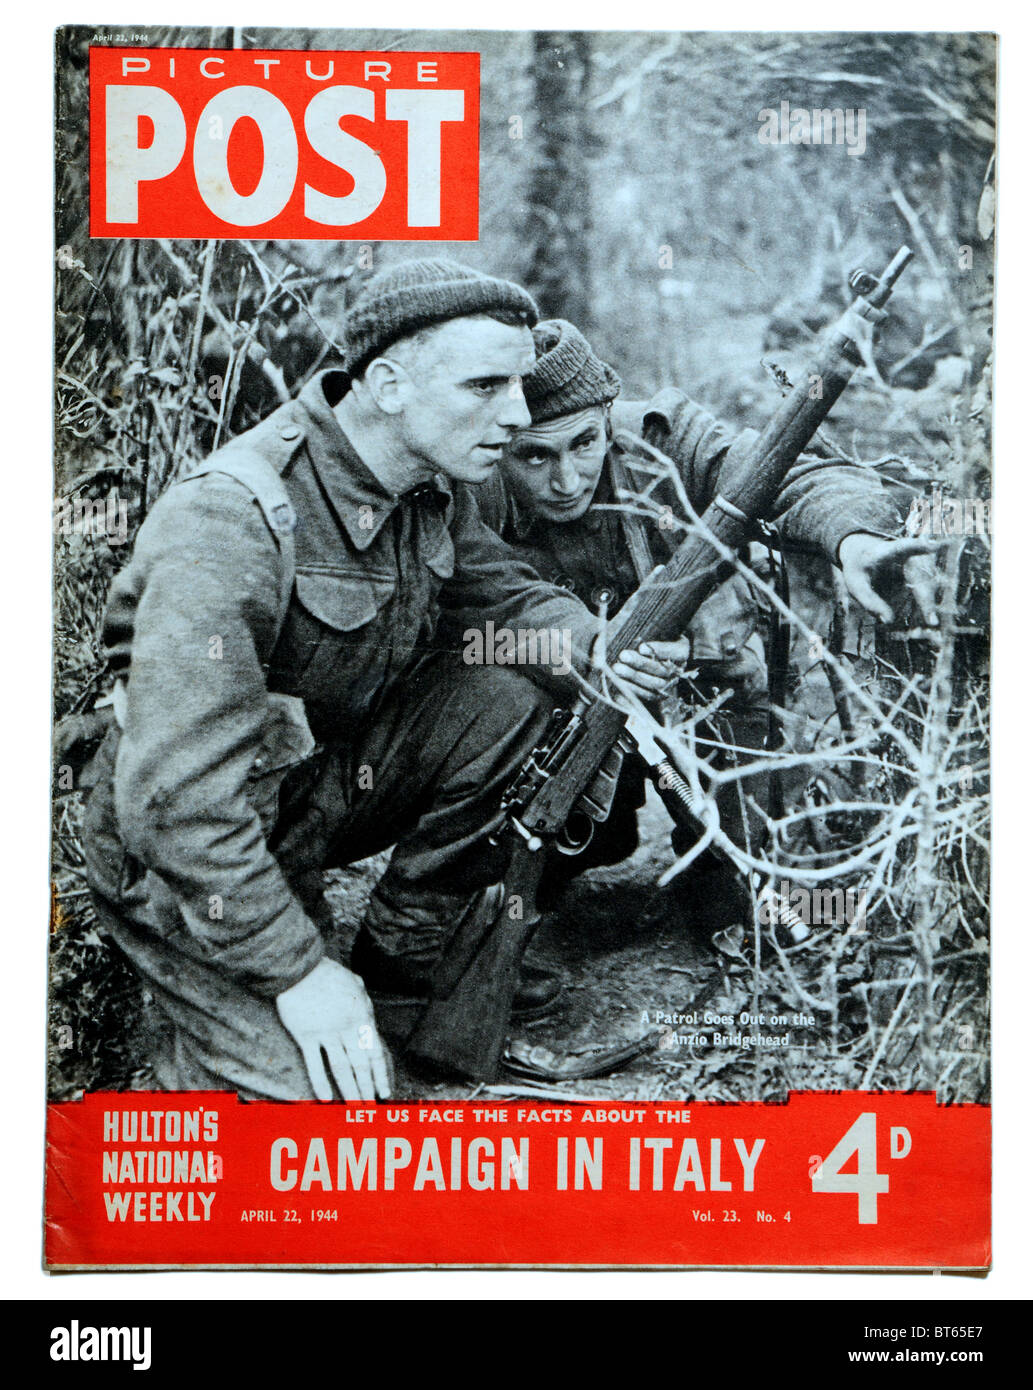 22 april 1944 army soldier rifle anzio bridgehead italy Picture Post prominent photojournalistic magazine published - Stock Image